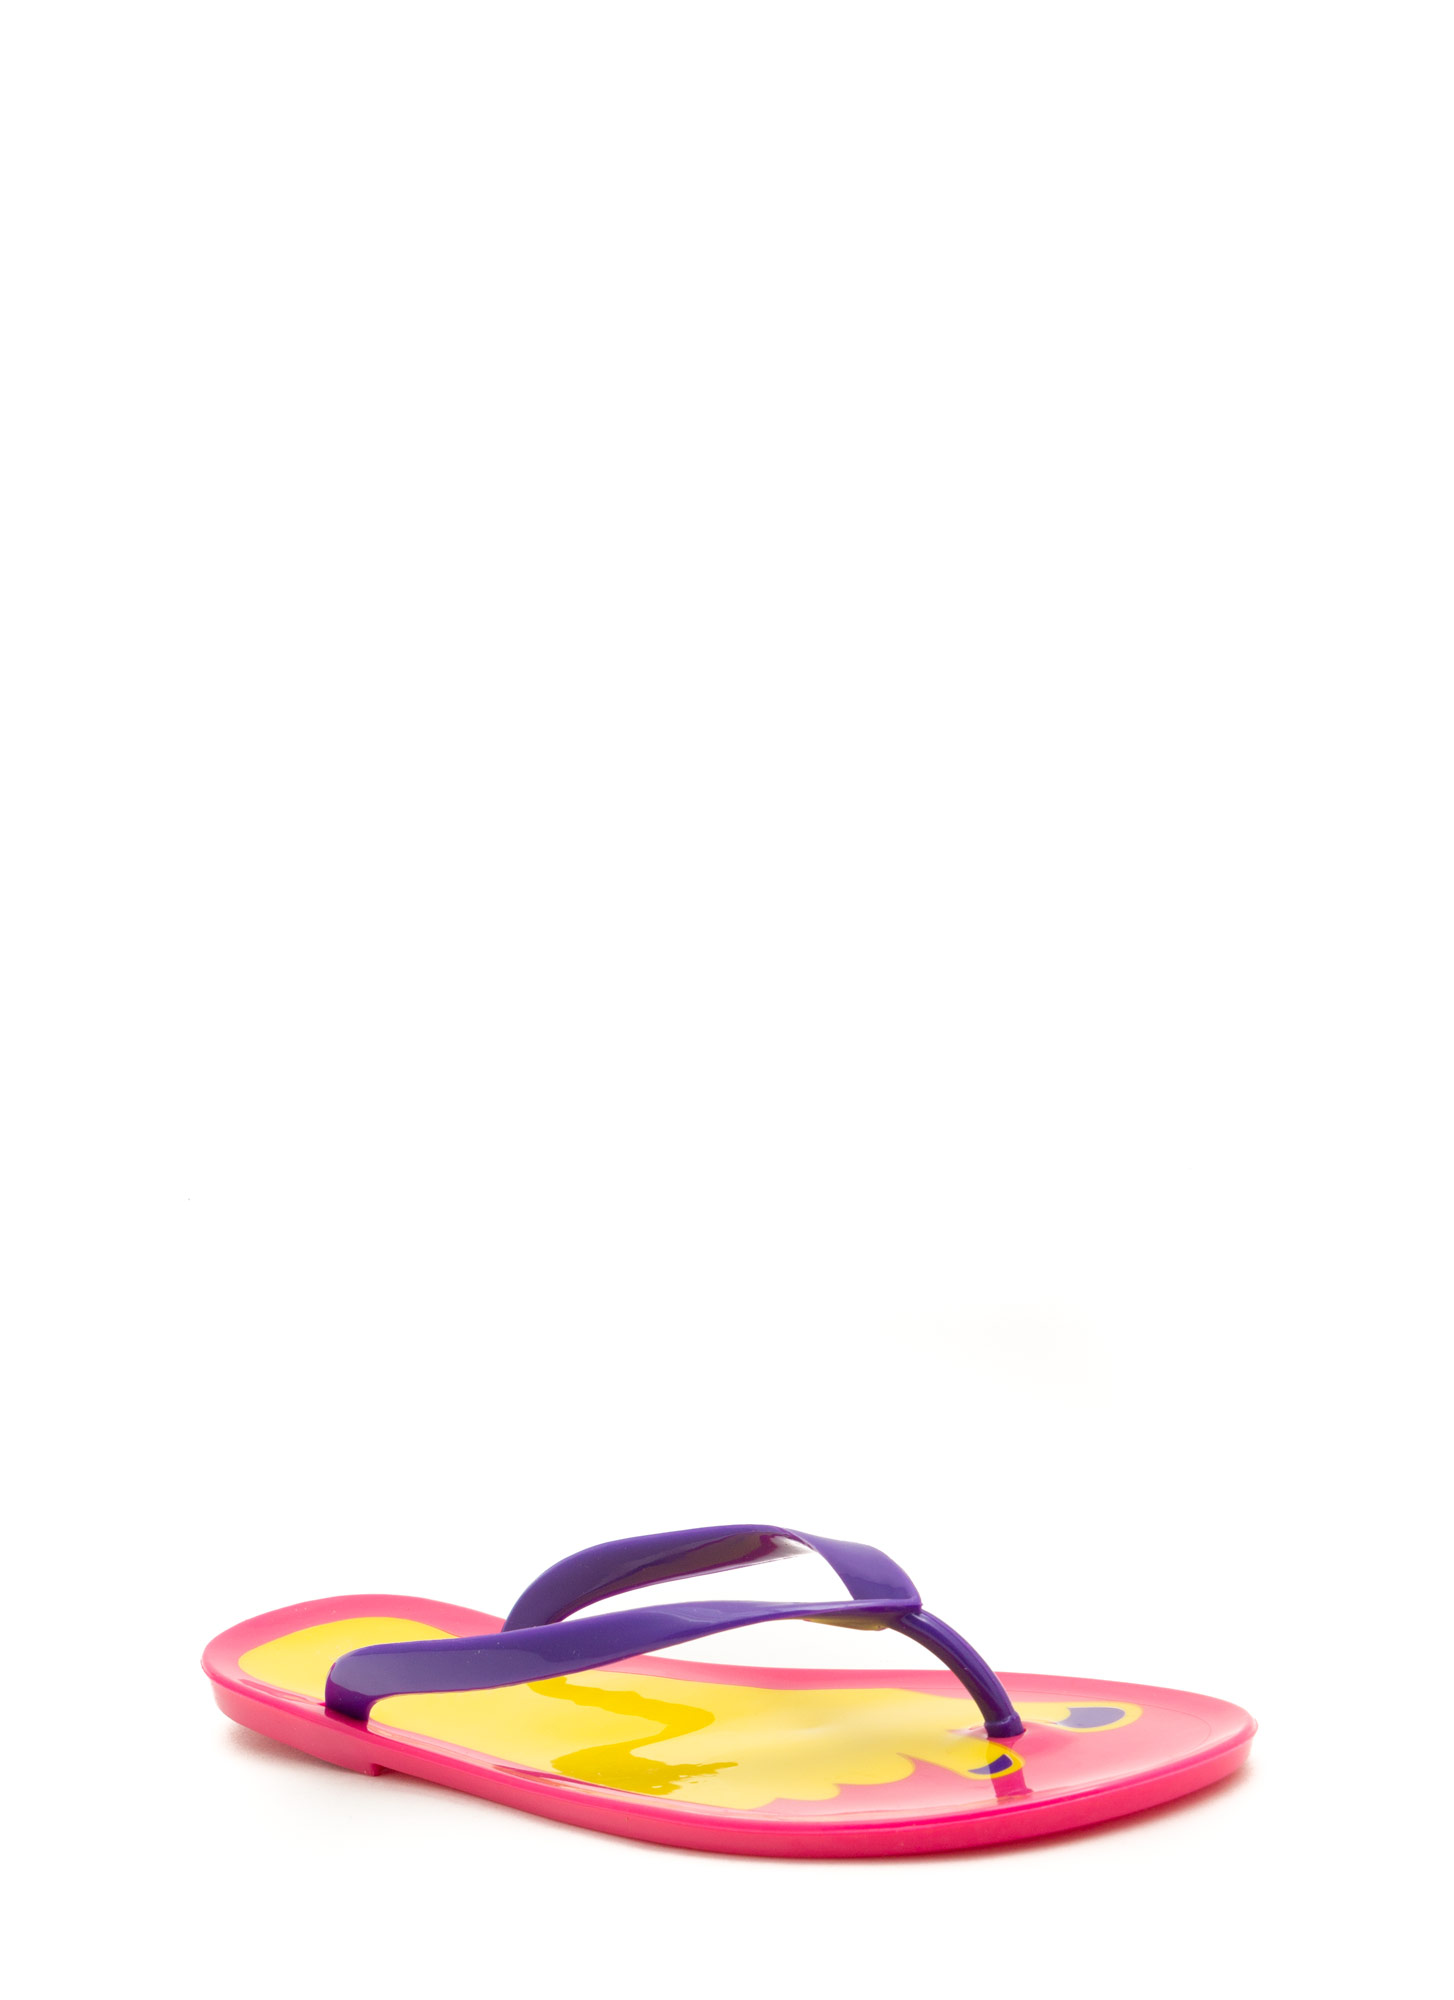 Jump In With Both Feet Thong Sandals PURPLE